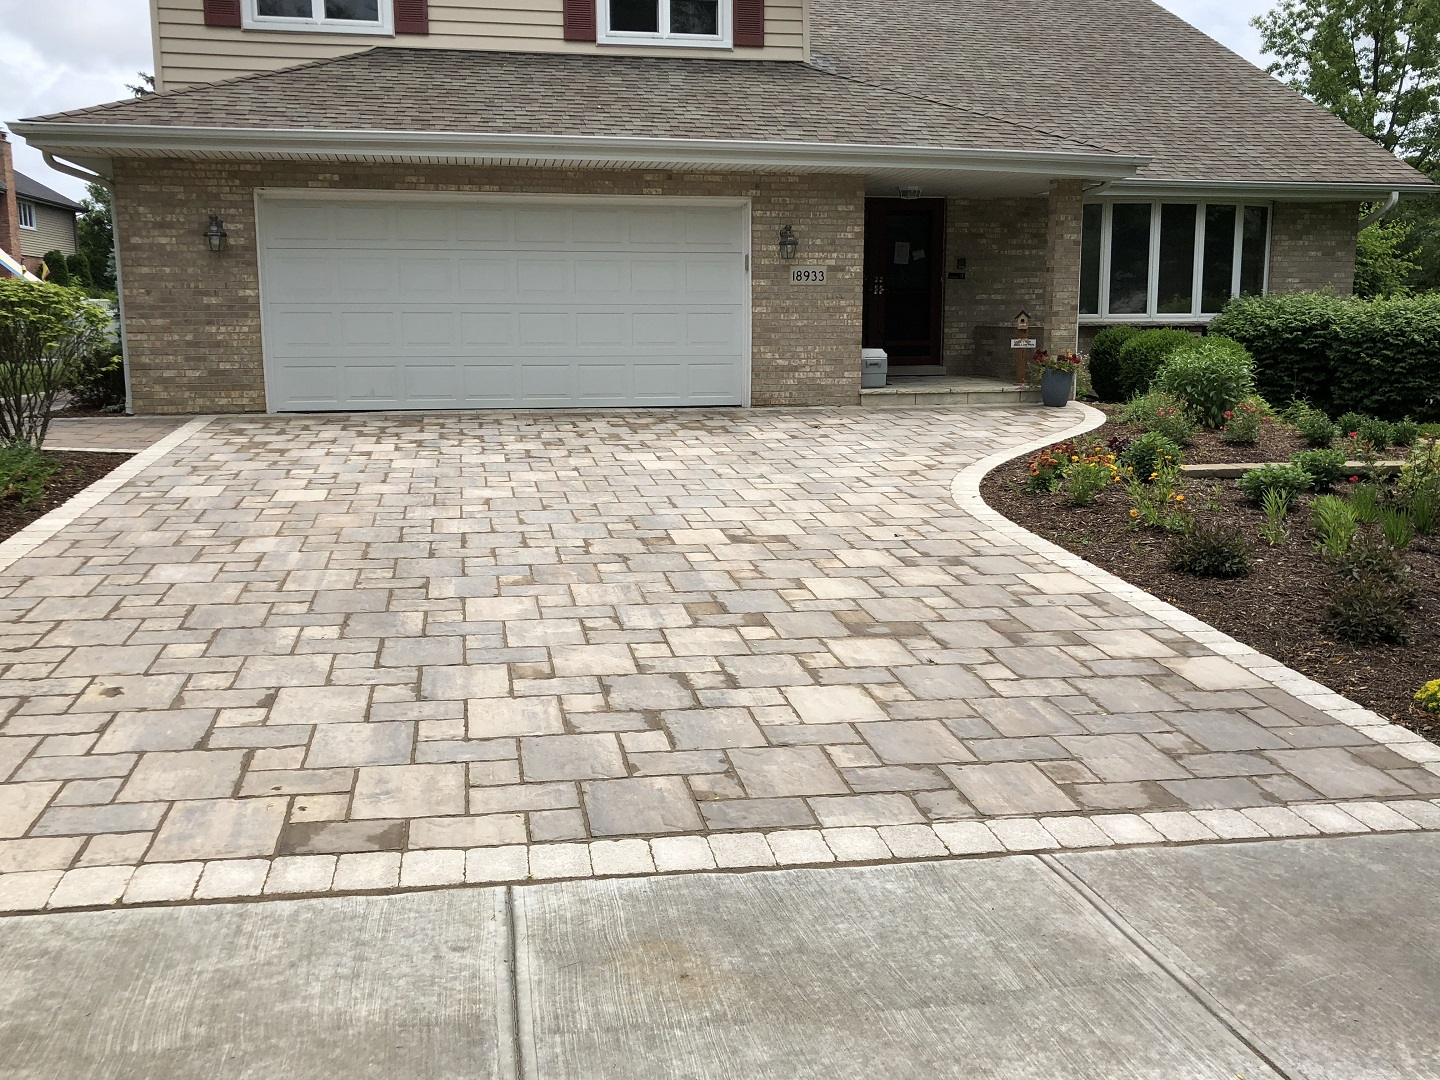 Driveway pavers in Peotone, IL